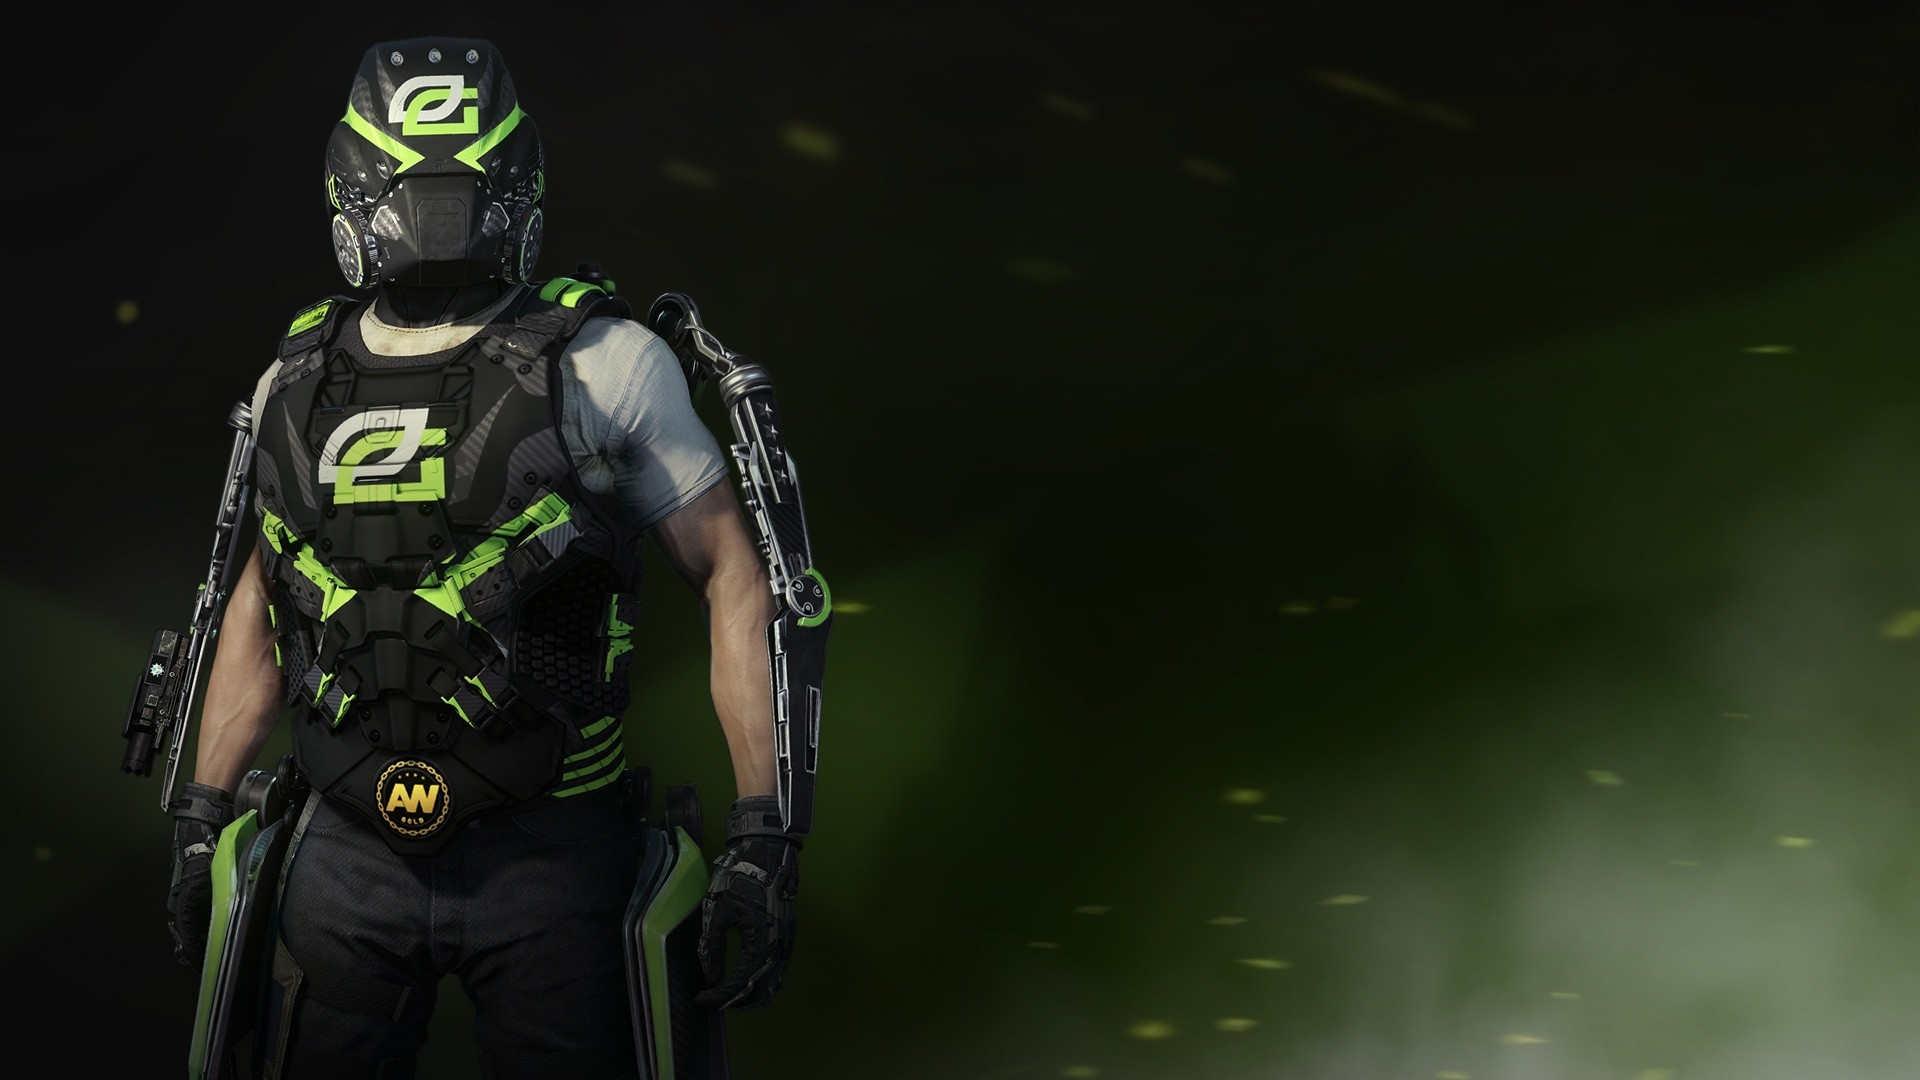 Download Optic Gaming Desktop Wallpaper, HD Backgrounds